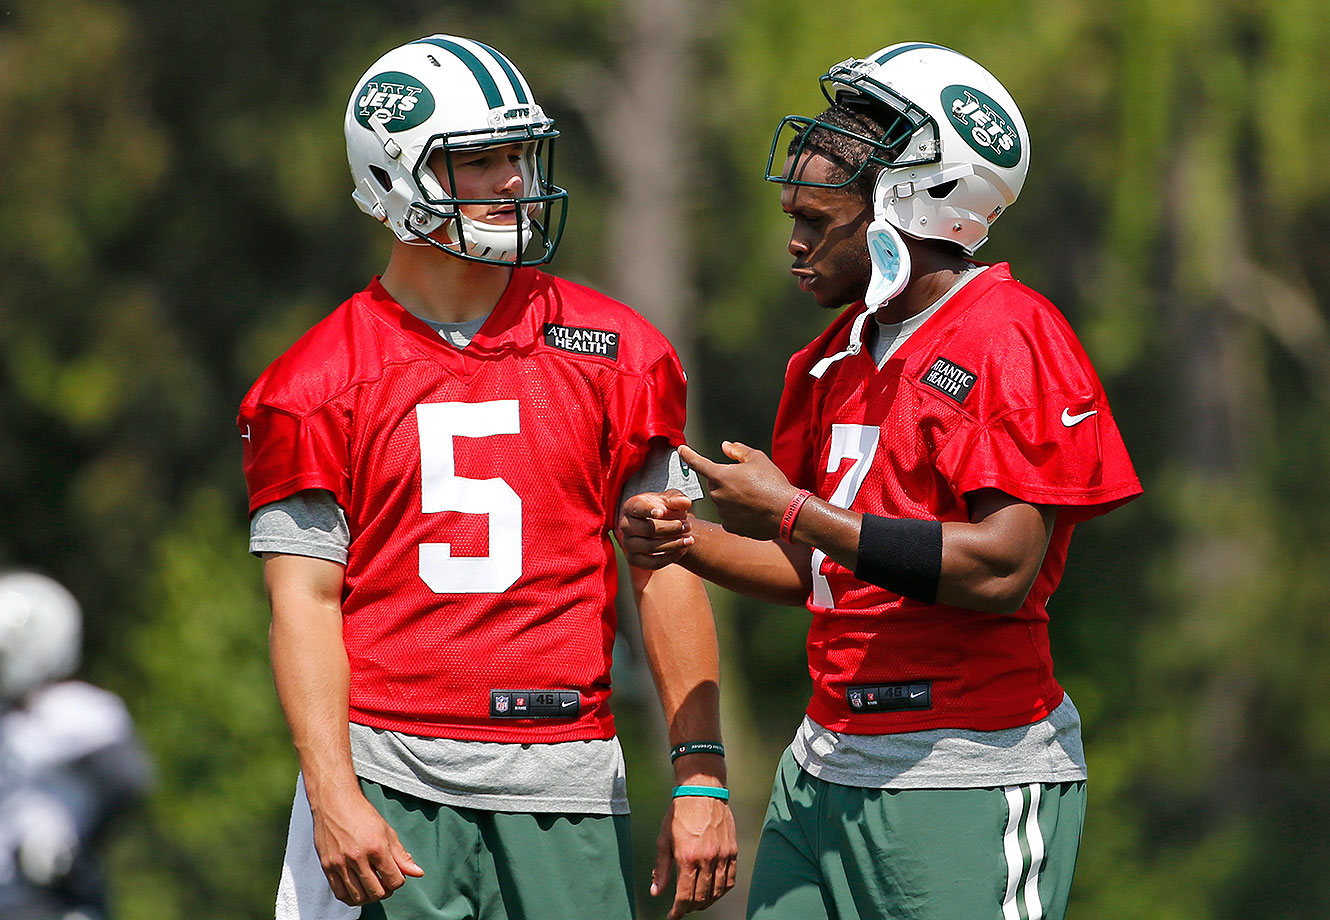 New York Jets rookie quarterback Christian Hackenberg, left listens as quarterback Geno Smith (7) speaks to him during NFL football practice, Wednesday, May 25, 2016, in Florham Park, N.J.